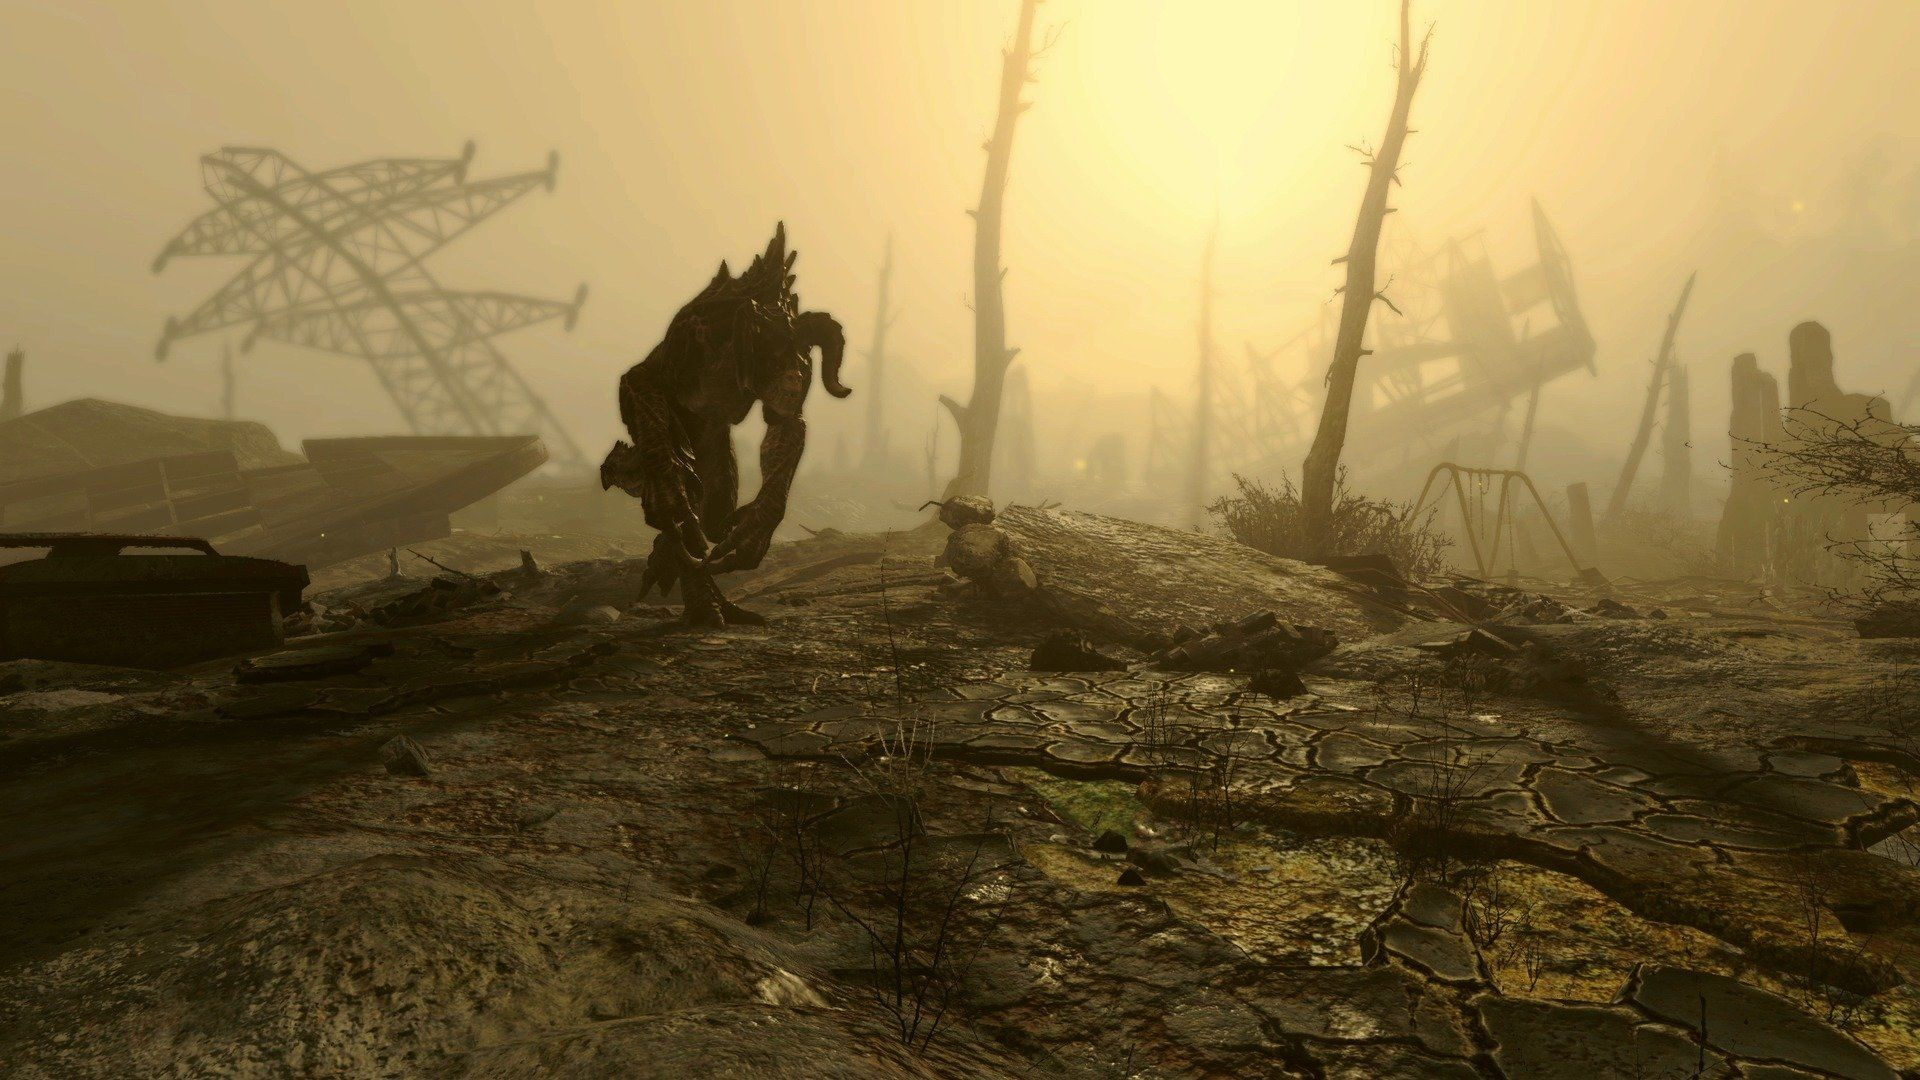 Nuke Fallout 4 Wallpapers - Top Free Nuke Fallout 4 Backgrounds